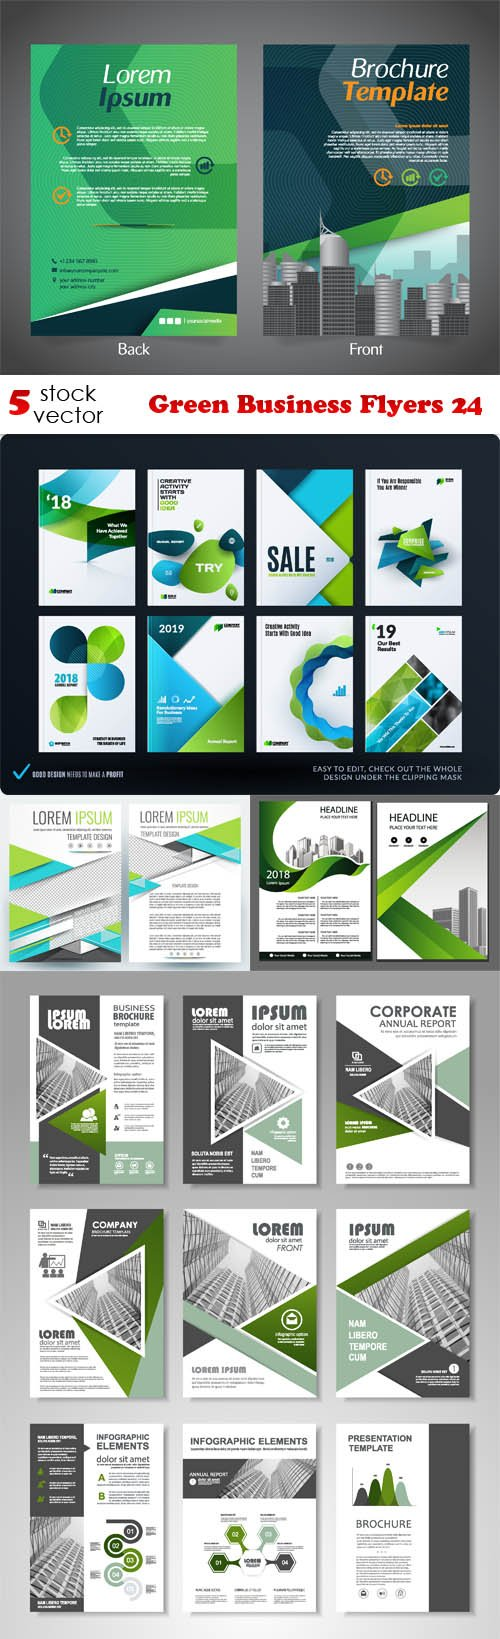 Vectors - Green Business Flyers 24